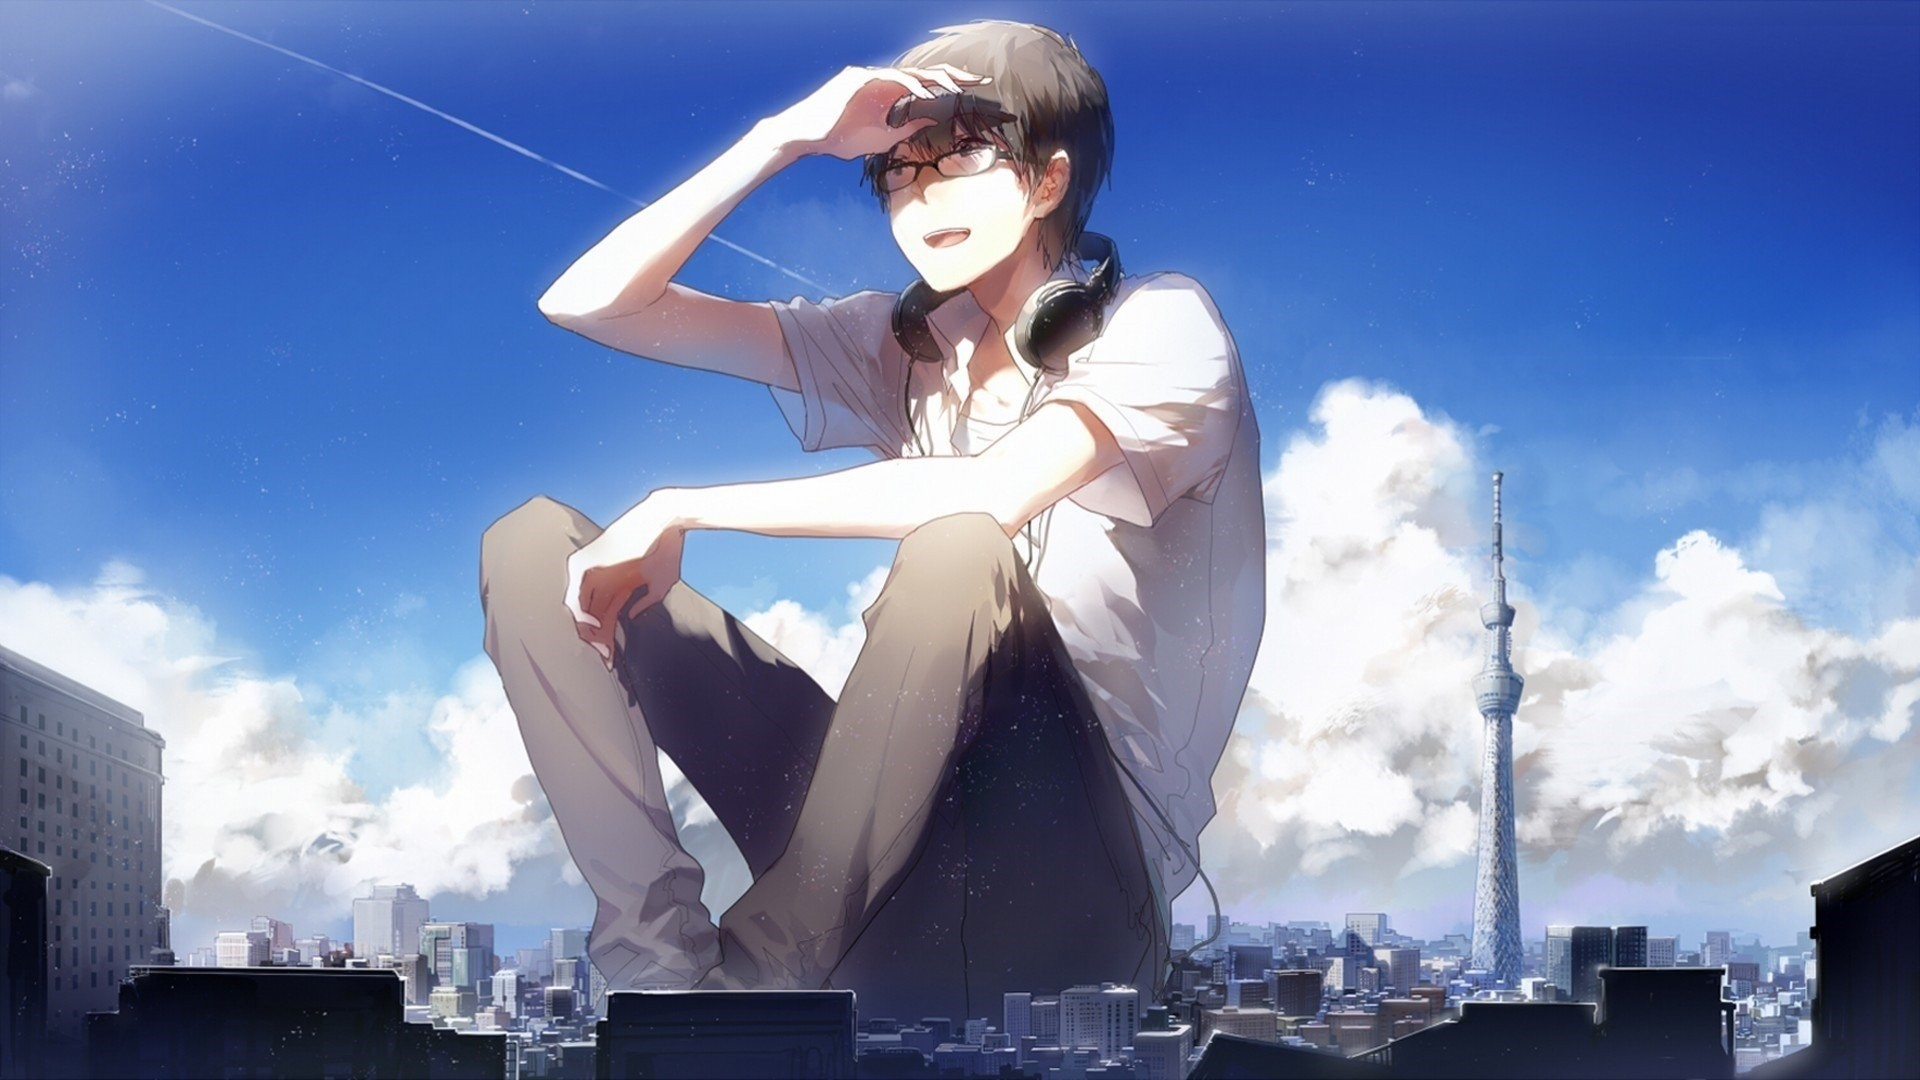 Anime Guy With Glasses Free Wallpaper